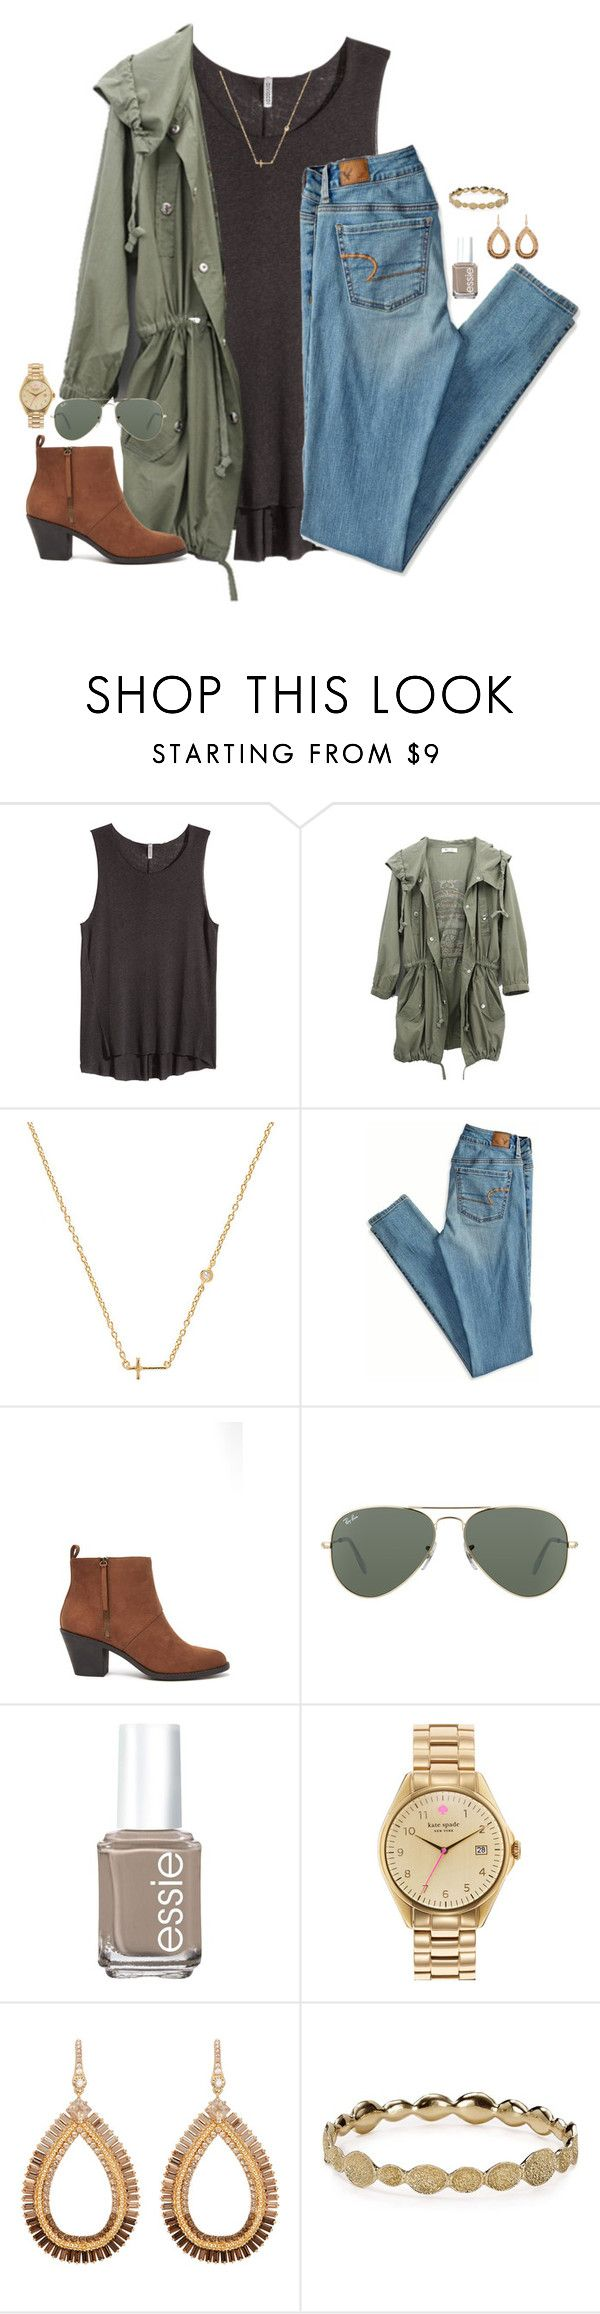 """""""read d!"""" by kaley-ii ❤ liked on Polyvore featuring moda, H&M, Sydney Evan, American Eagle Outfitters, Forever 21, Ray-Ban, Essie, Kate Spade, Henri Bendel i Melinda Maria"""